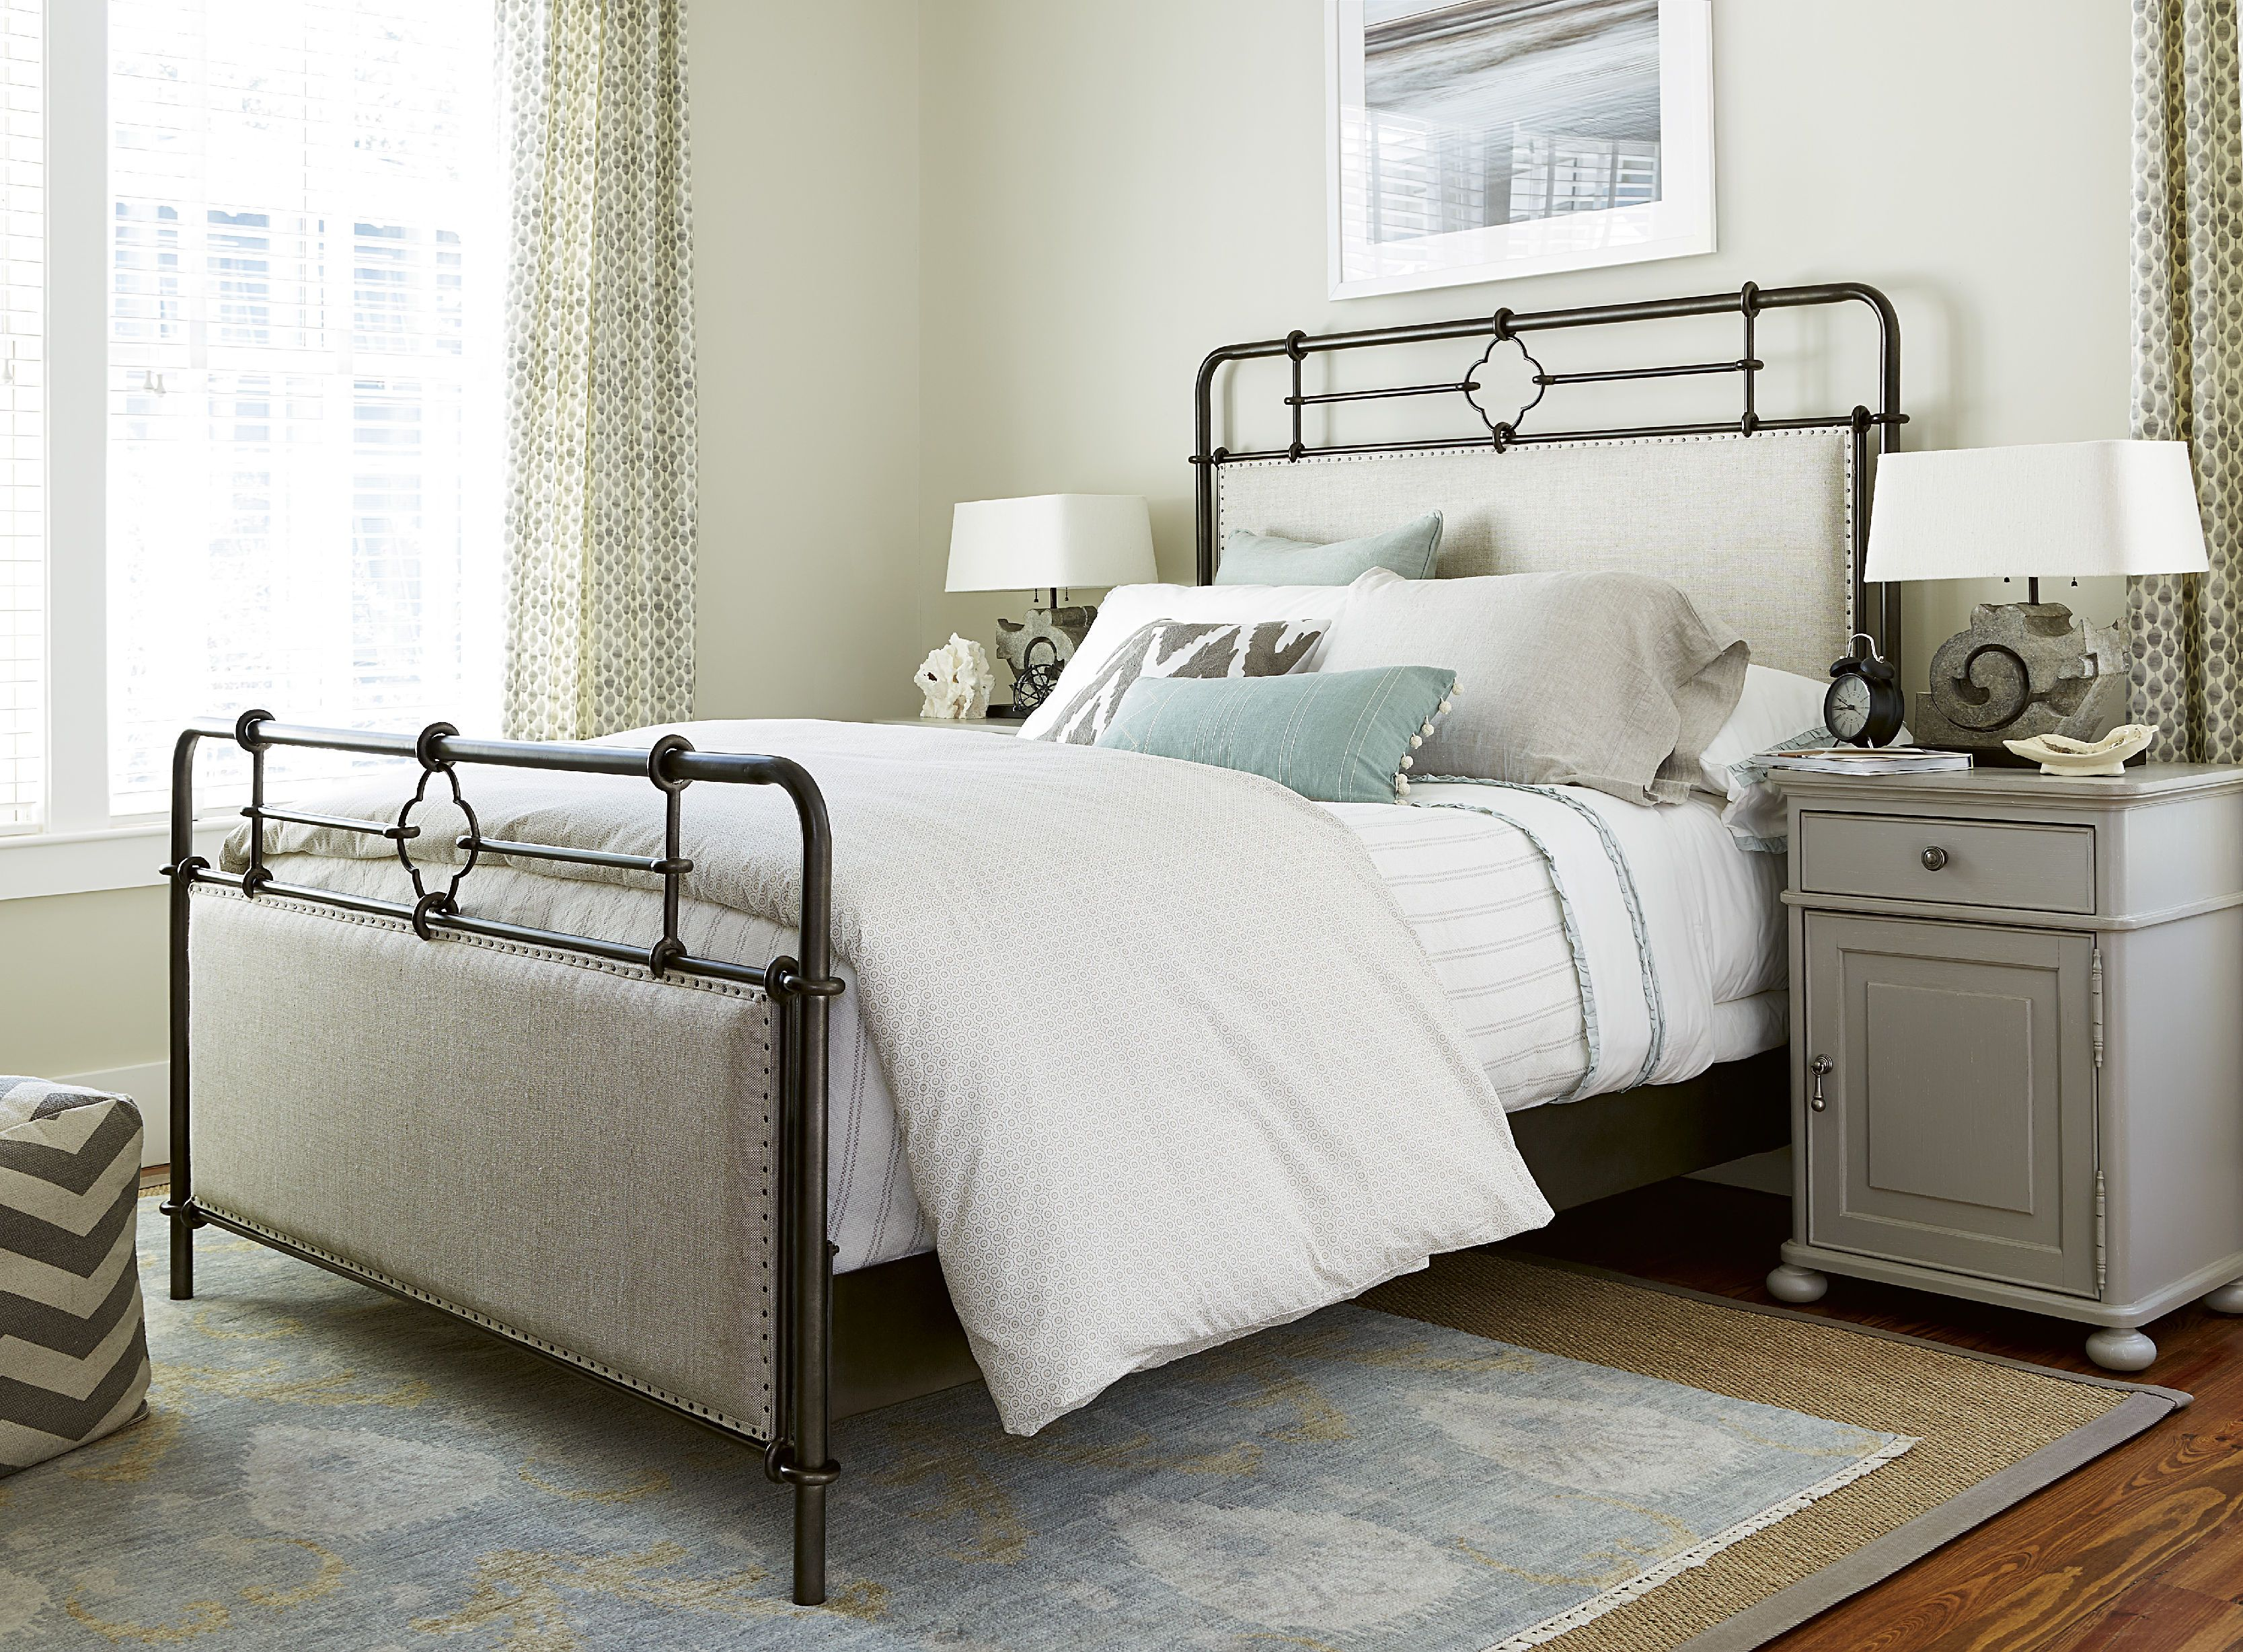 Elegant Cool Epic Paula Deen Bedroom Furniture 78 With Additional Small Home  Remodel Ideas With Paula Deen